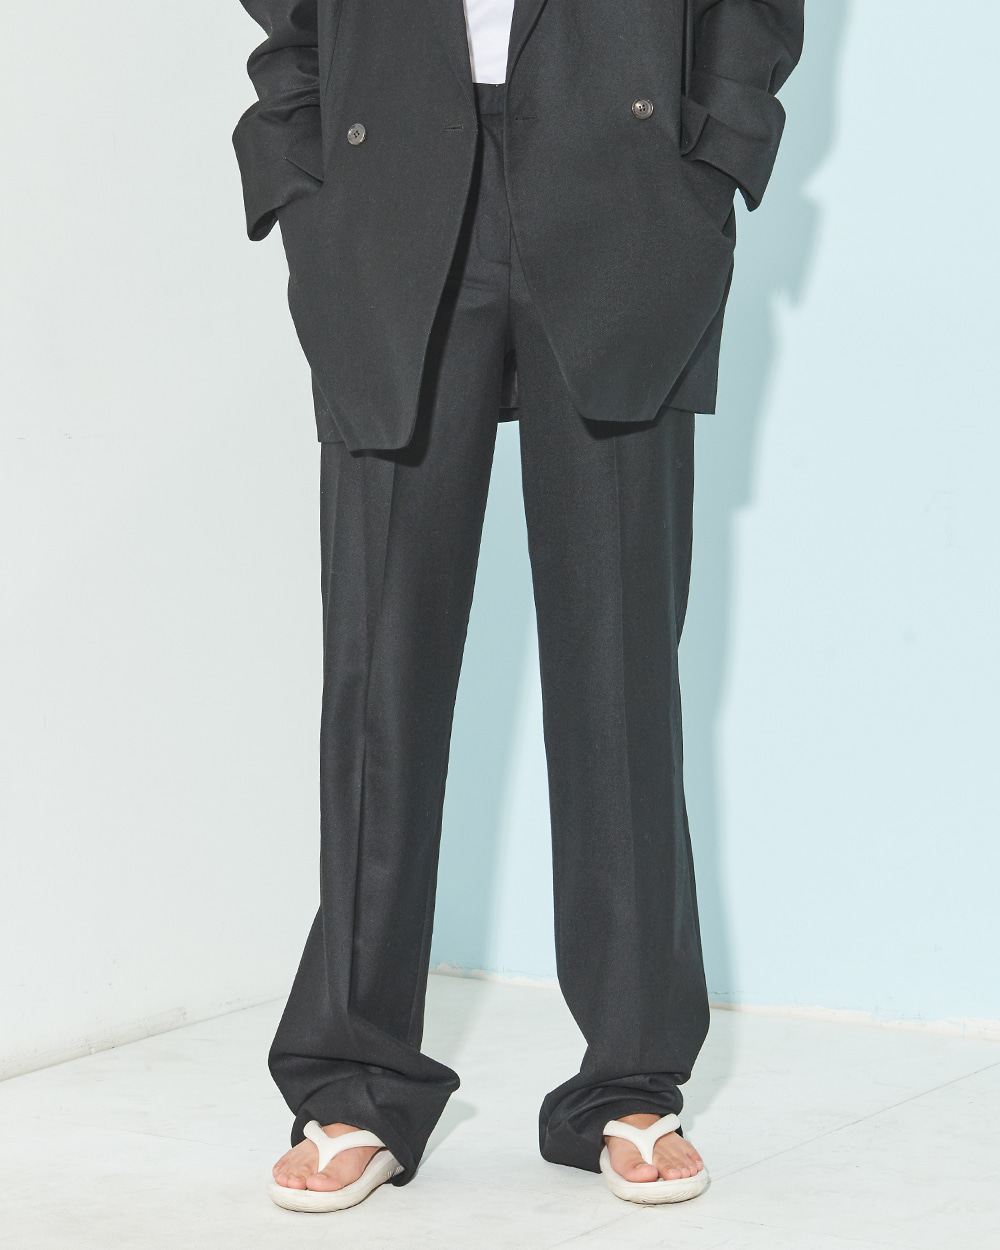 PF19 WIDE-LEG PANTS